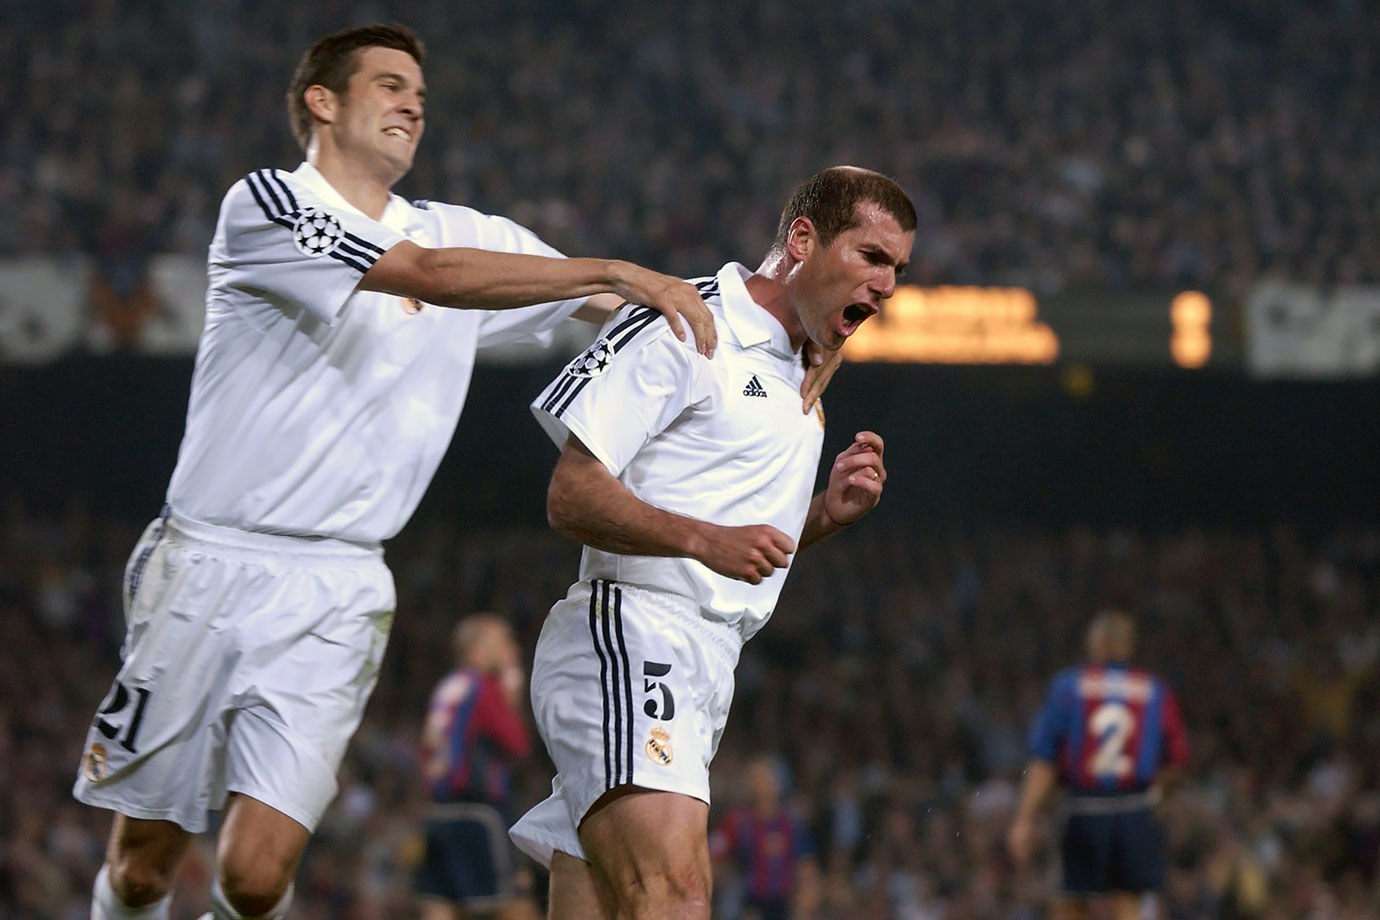 Real Madrid wins the first leg of their Champions League semifinal 2-0. Zinedine Zidane and Steve McManaman score in Barcelona en route to Madrid's 3-1 aggregate win. Madrid went on to win the Champions League.